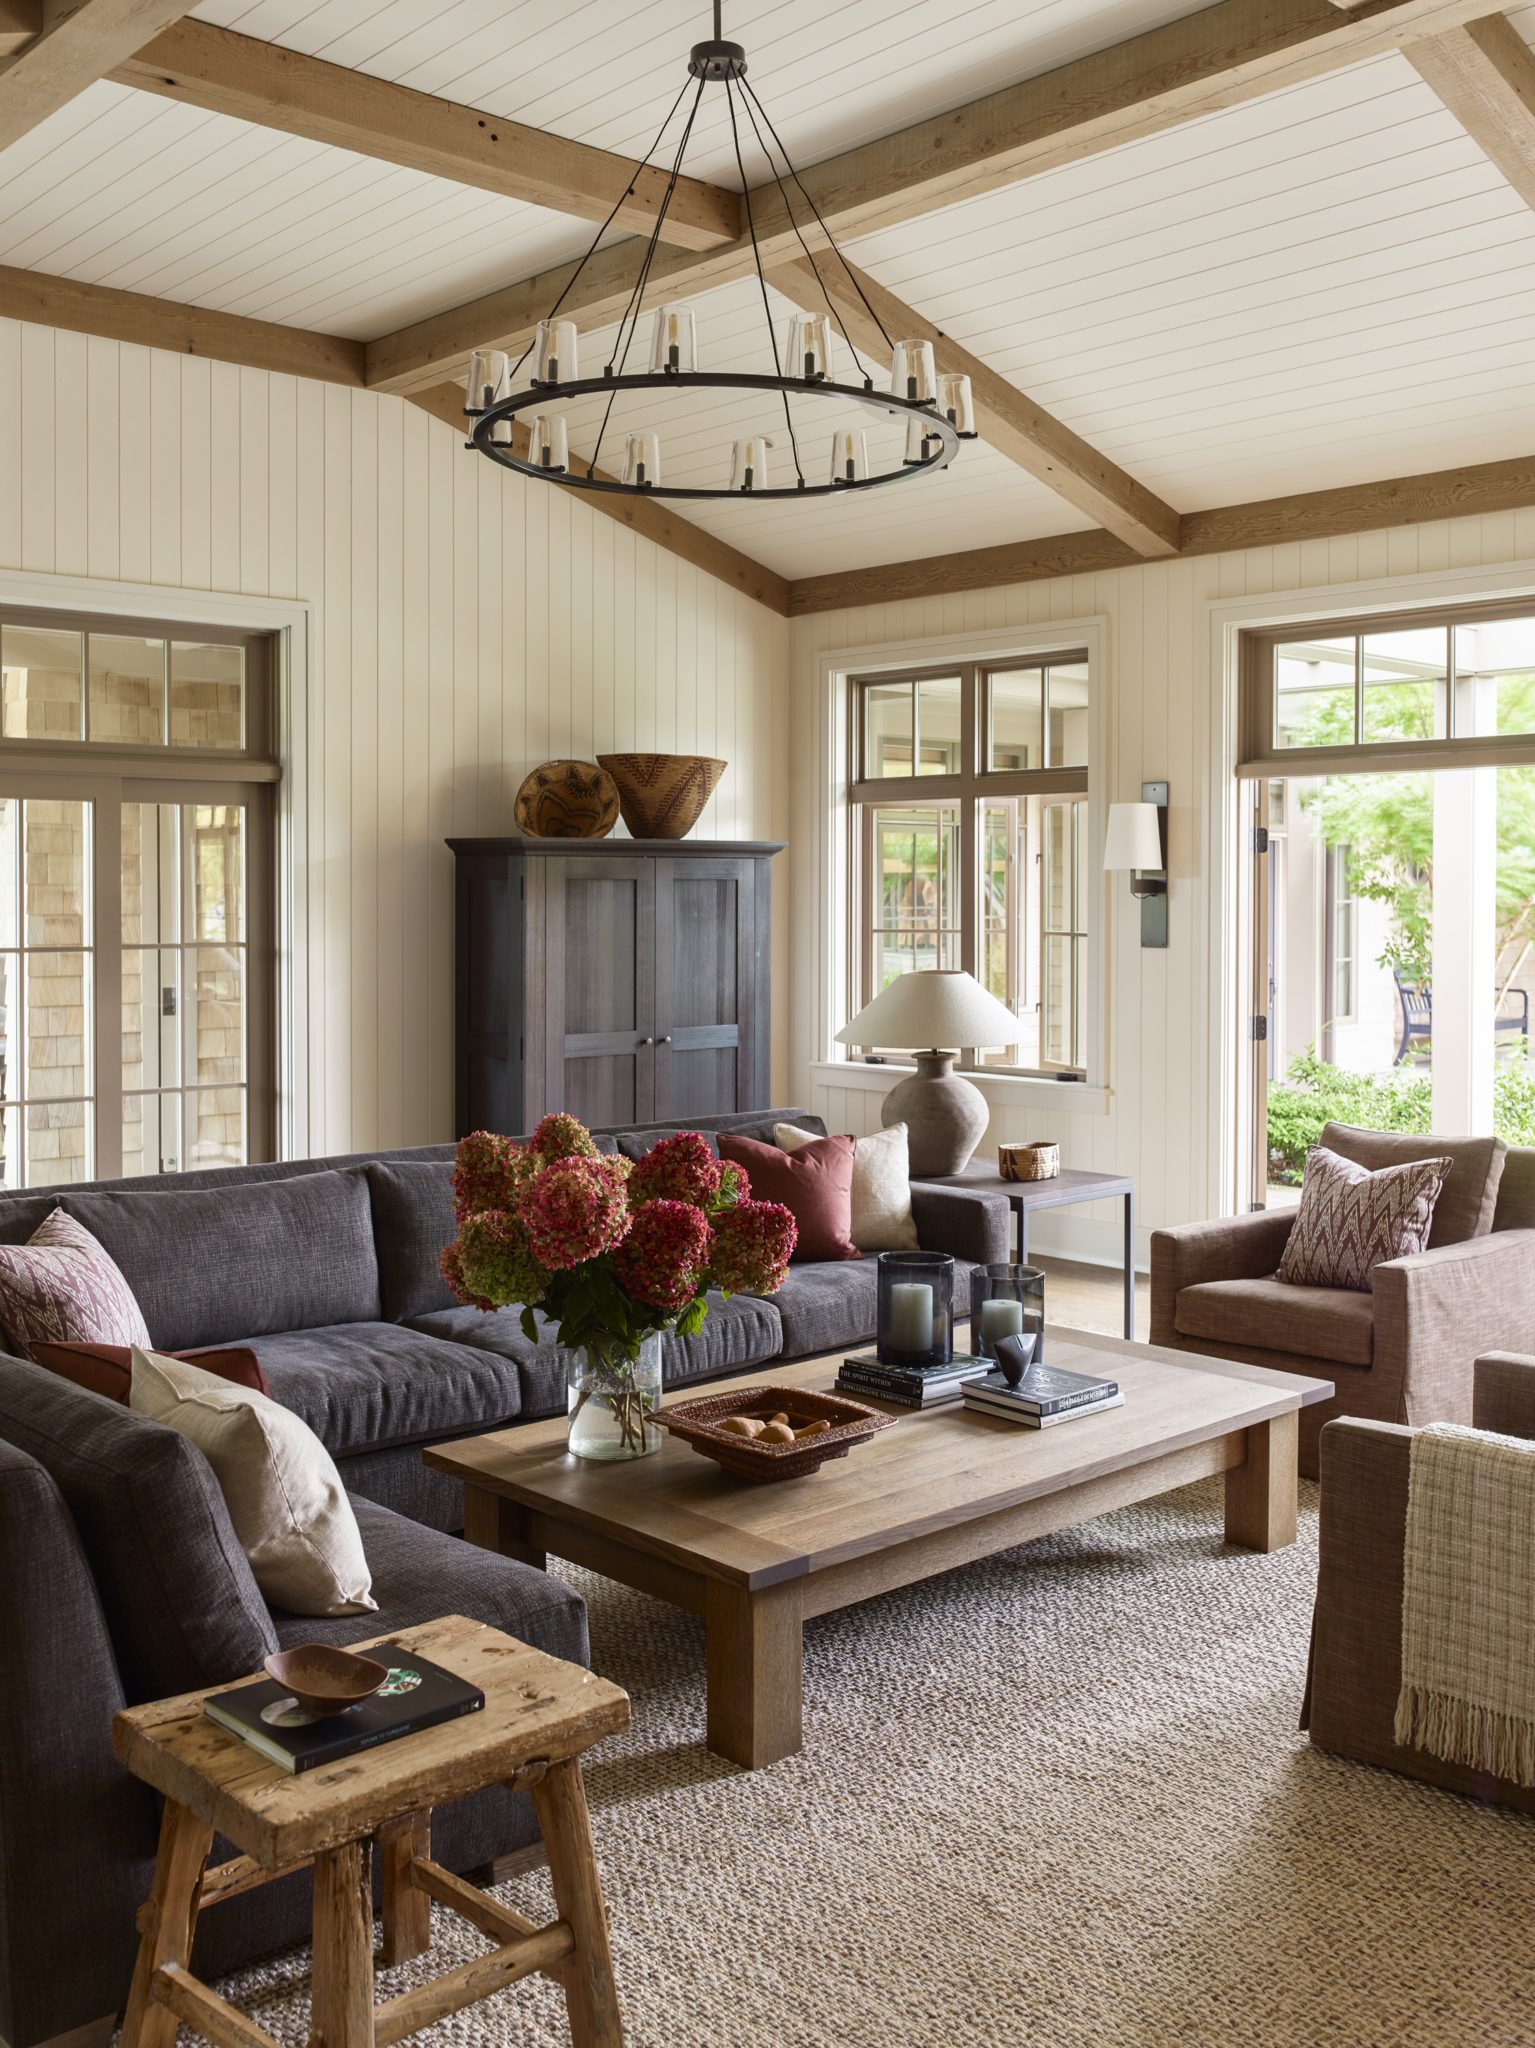 San Juan Island Retreat - Family Room by Kylee Shintaffer